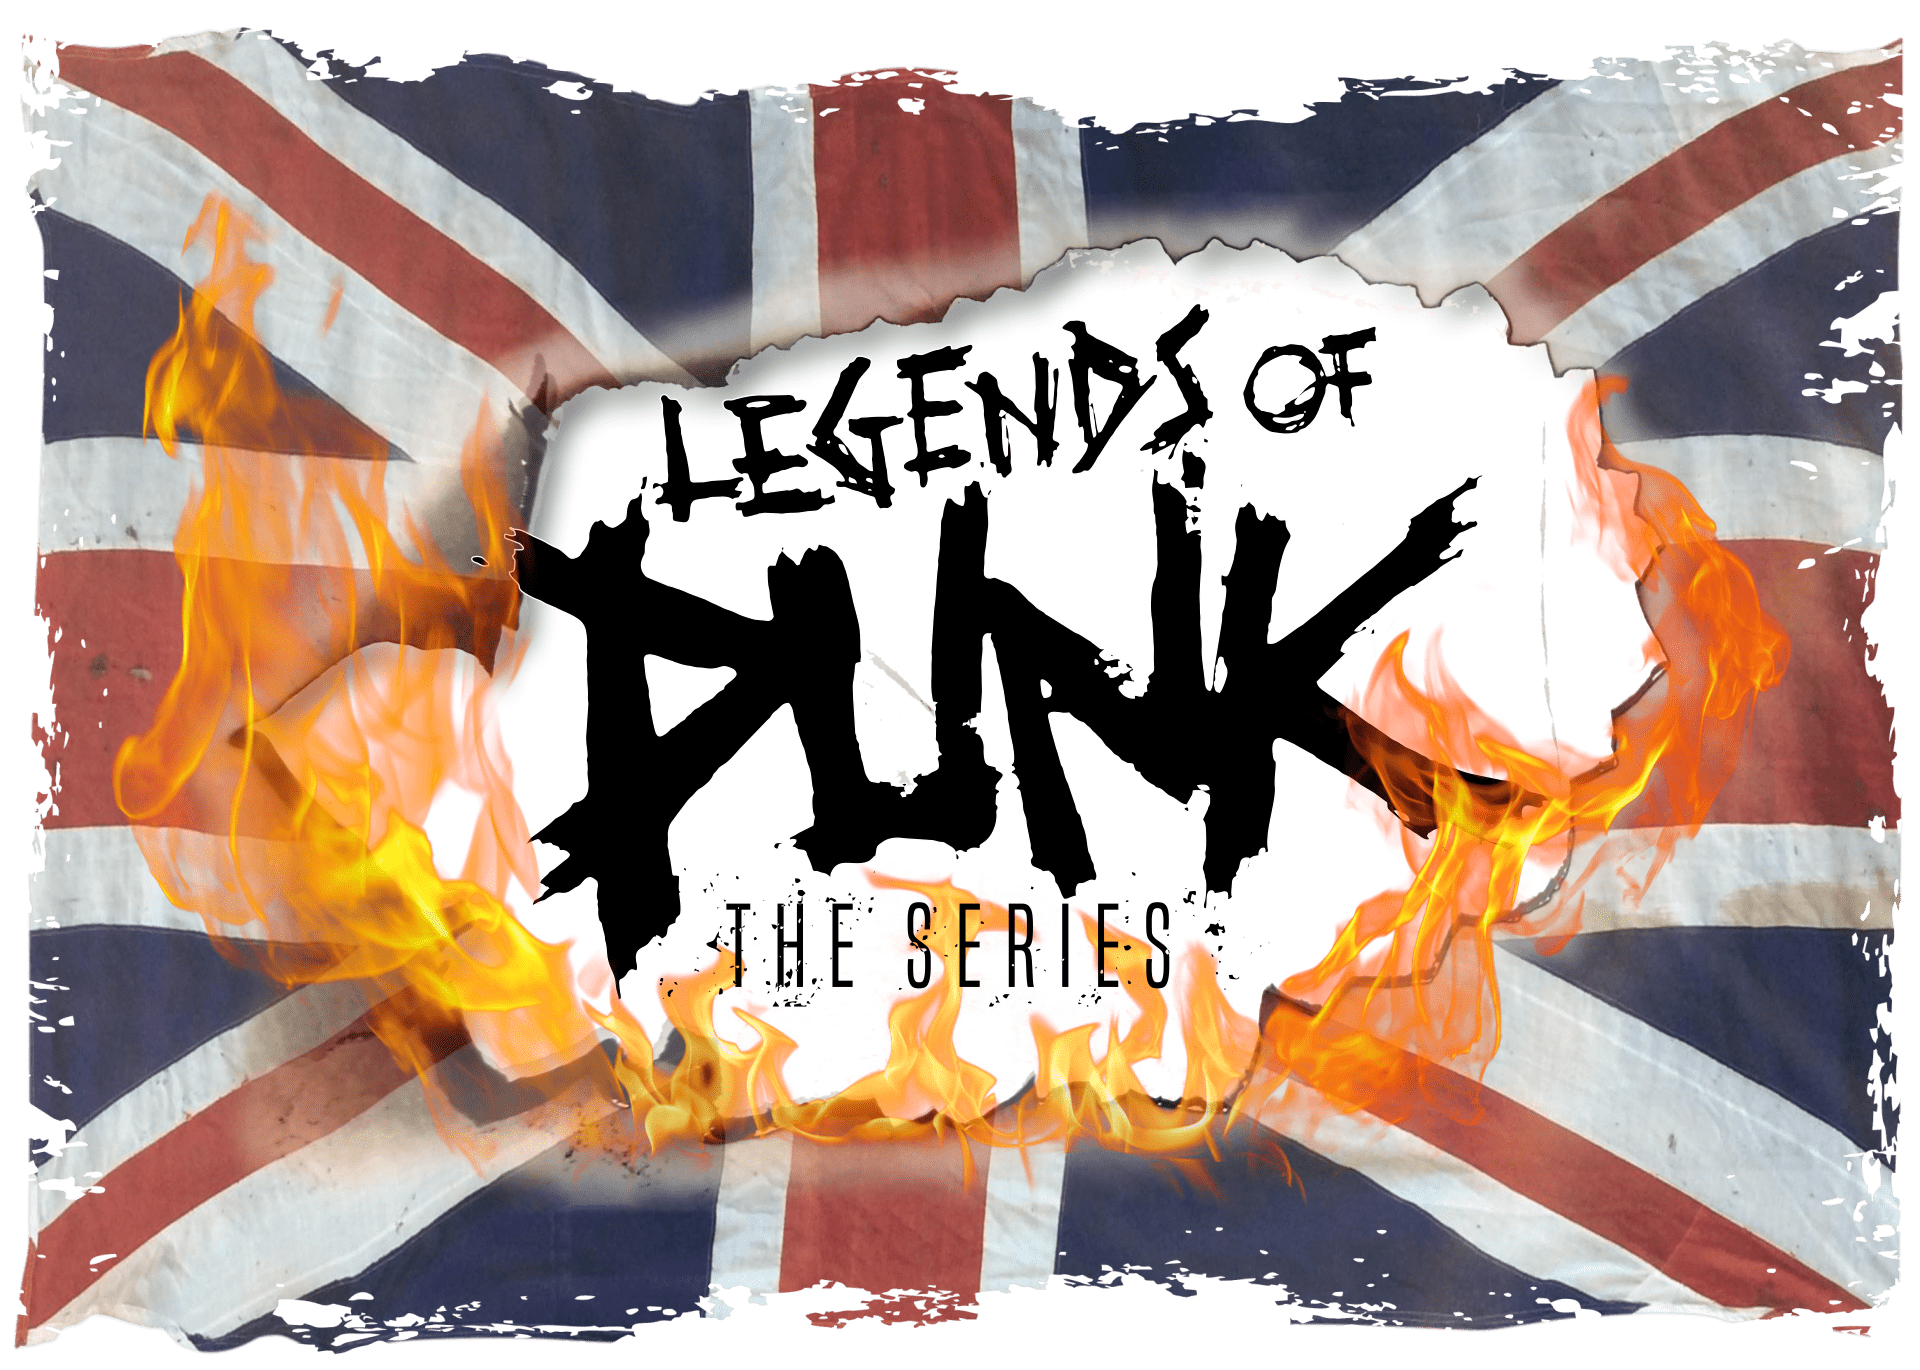 Legends of Punk - the series